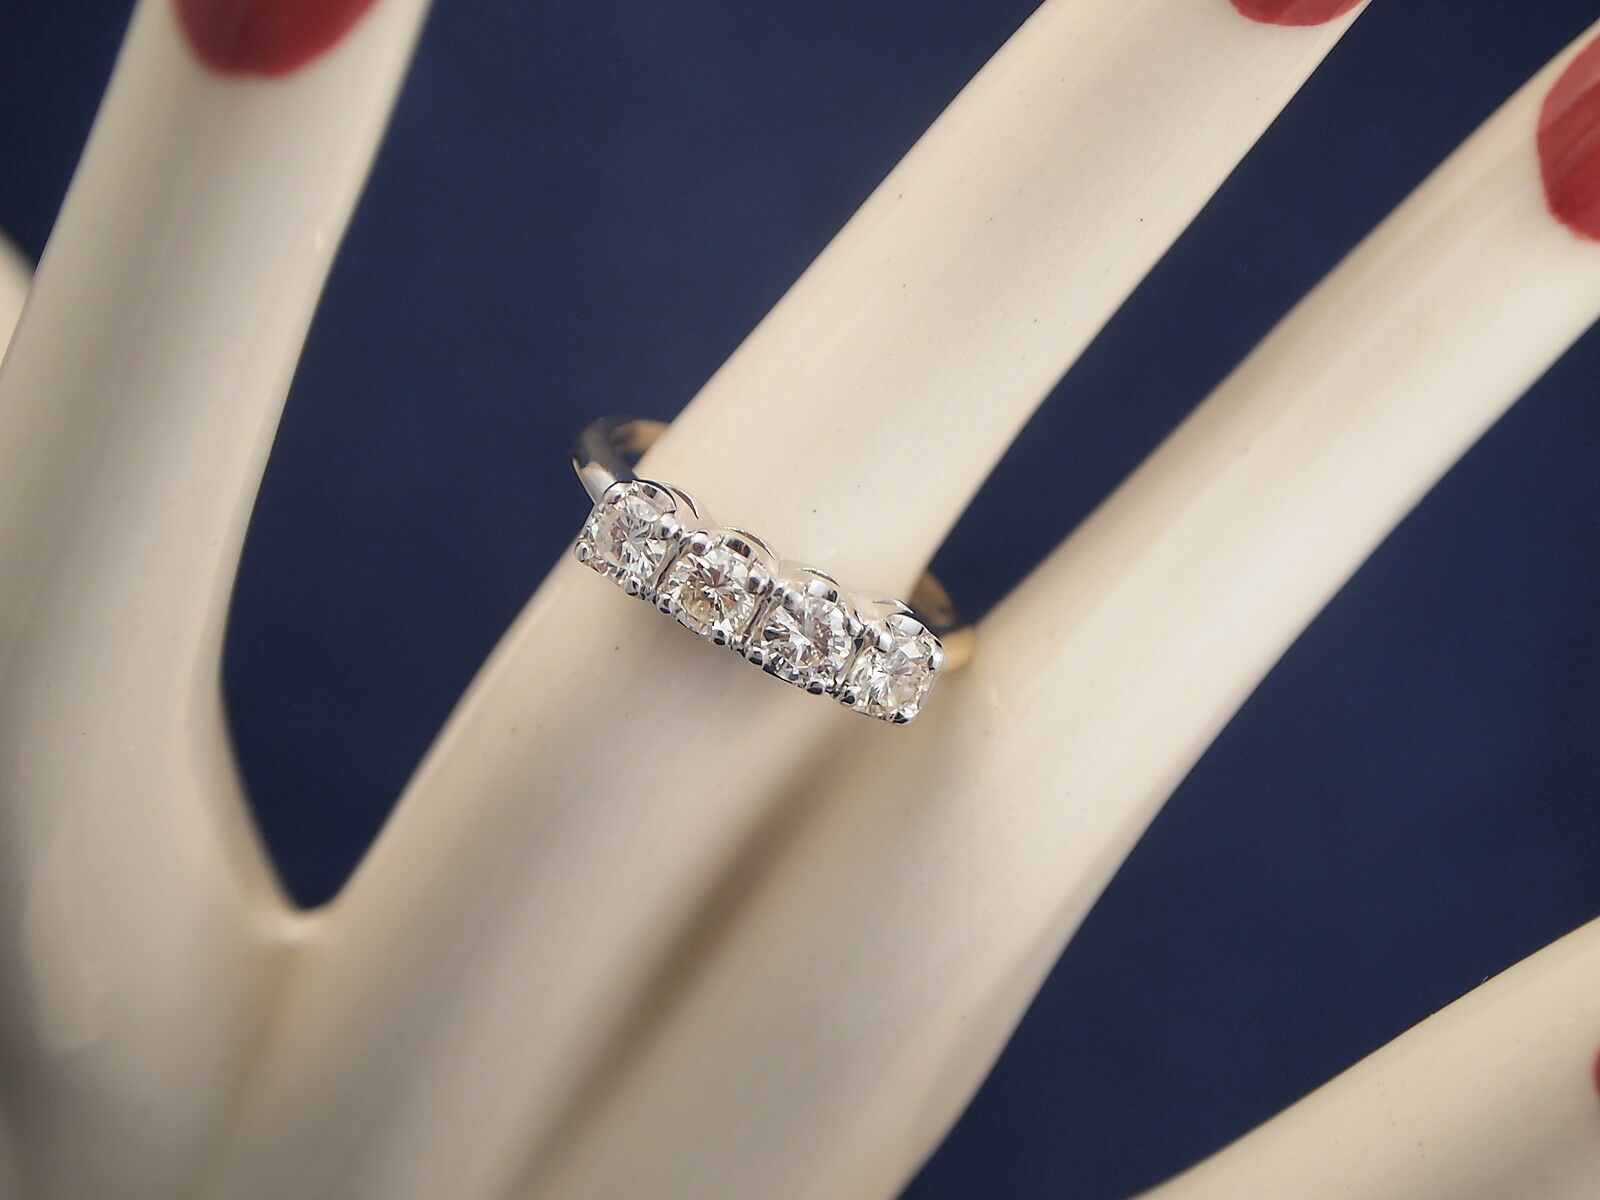 14K 1ct TDW Diamond Ring By  EXQUISITE   Size 7.5